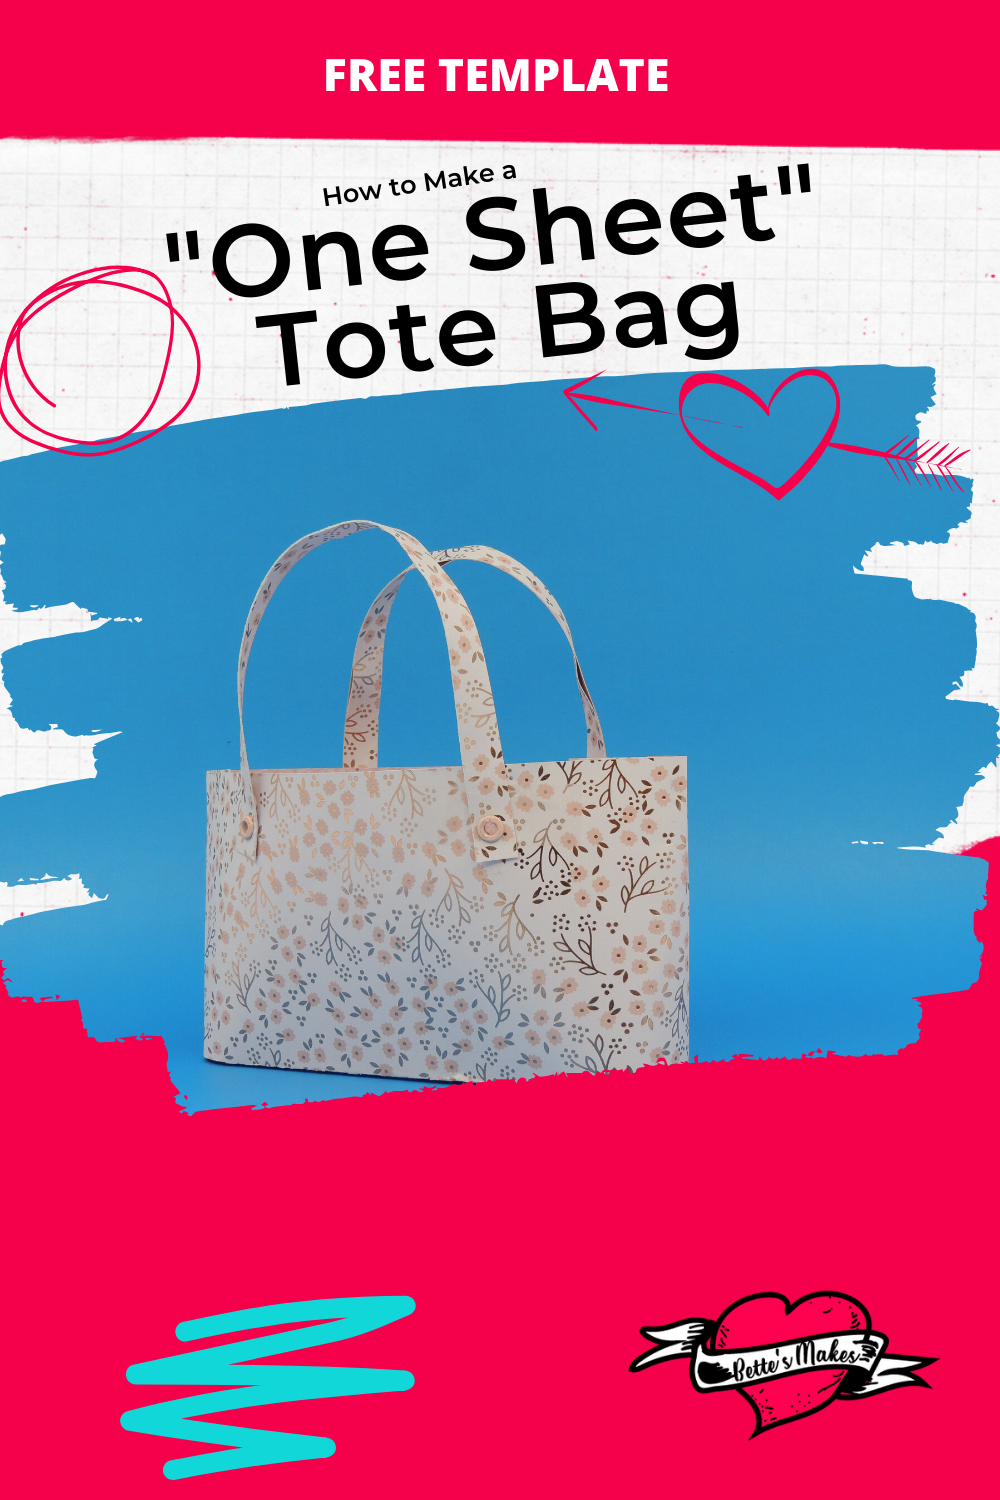 What a great tote bag! So Easy to Make and perfect for DIY Home Decor. You can even use these tote bags as a fashion accessory! #Cricut #papercraft